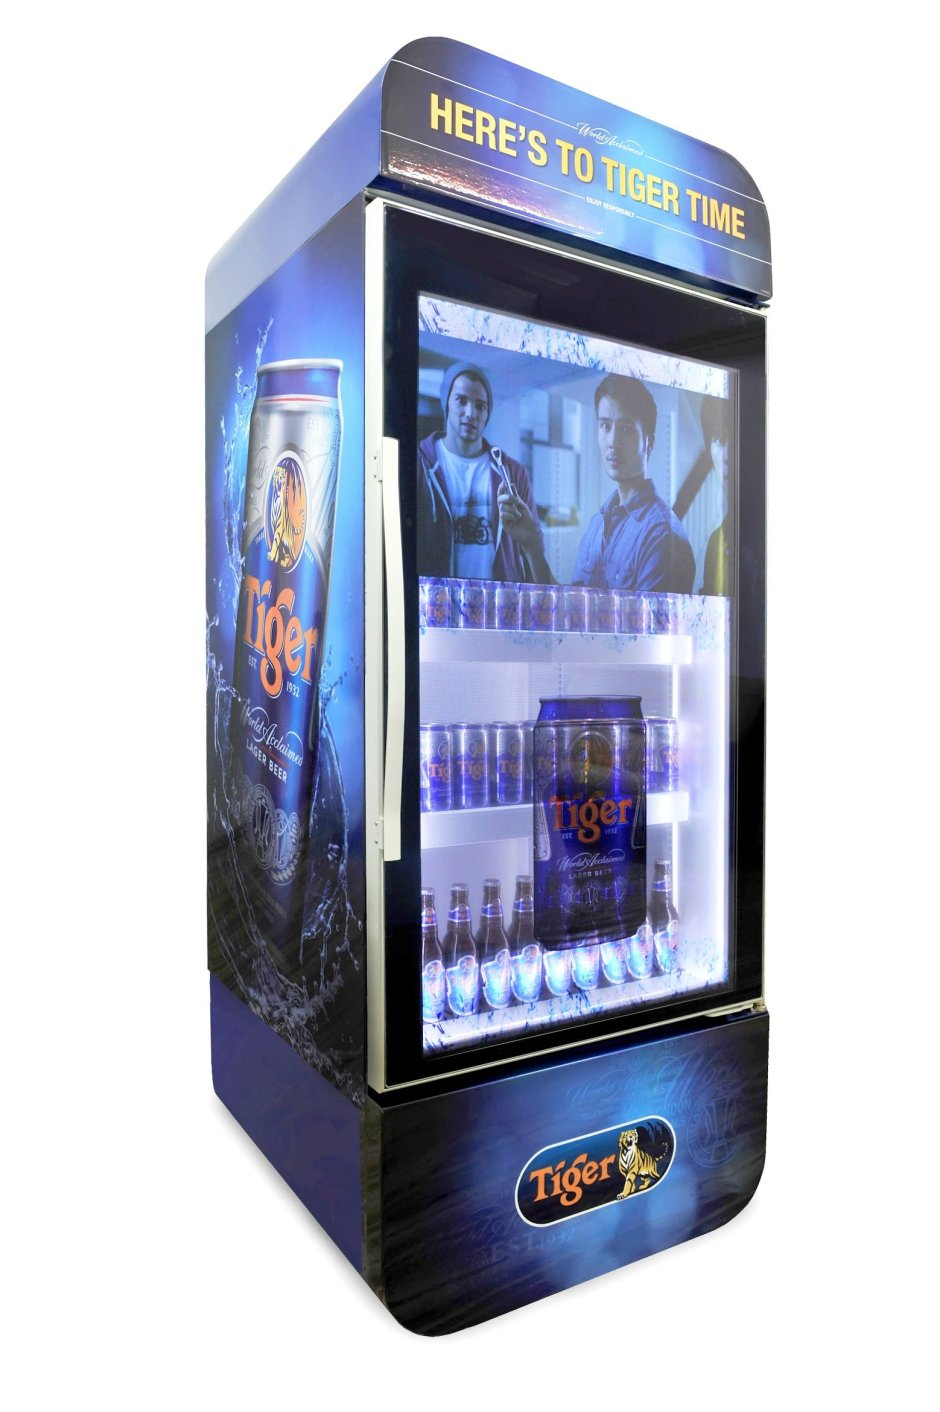 Tiger Beer Multimedia LCD Chiller